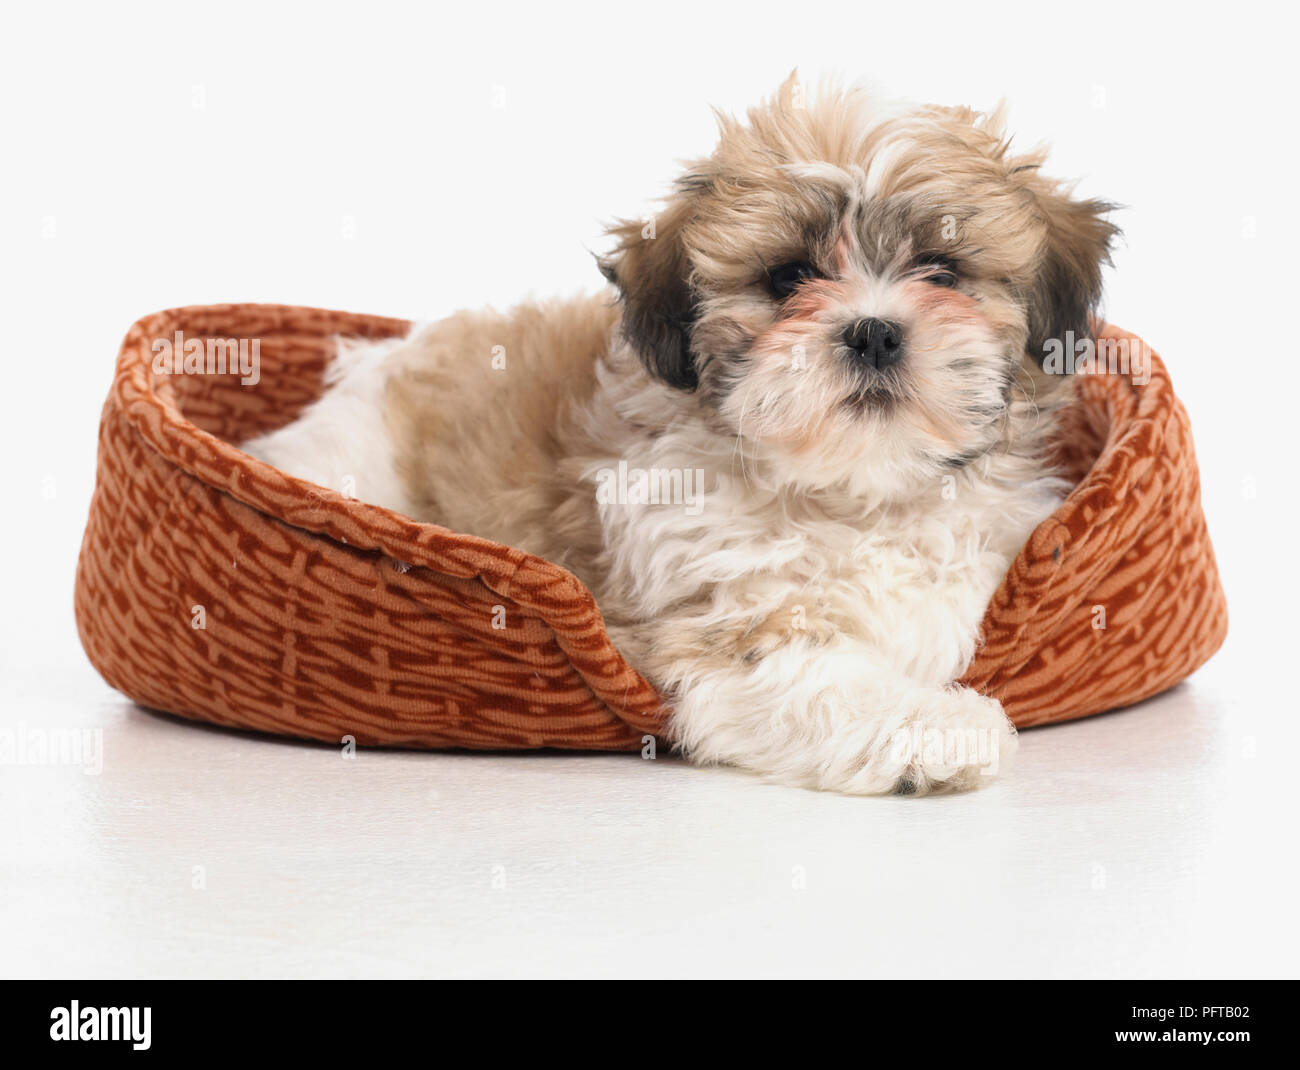 Shih Tzu puppy in dog bed, 8-week-old - Stock Image